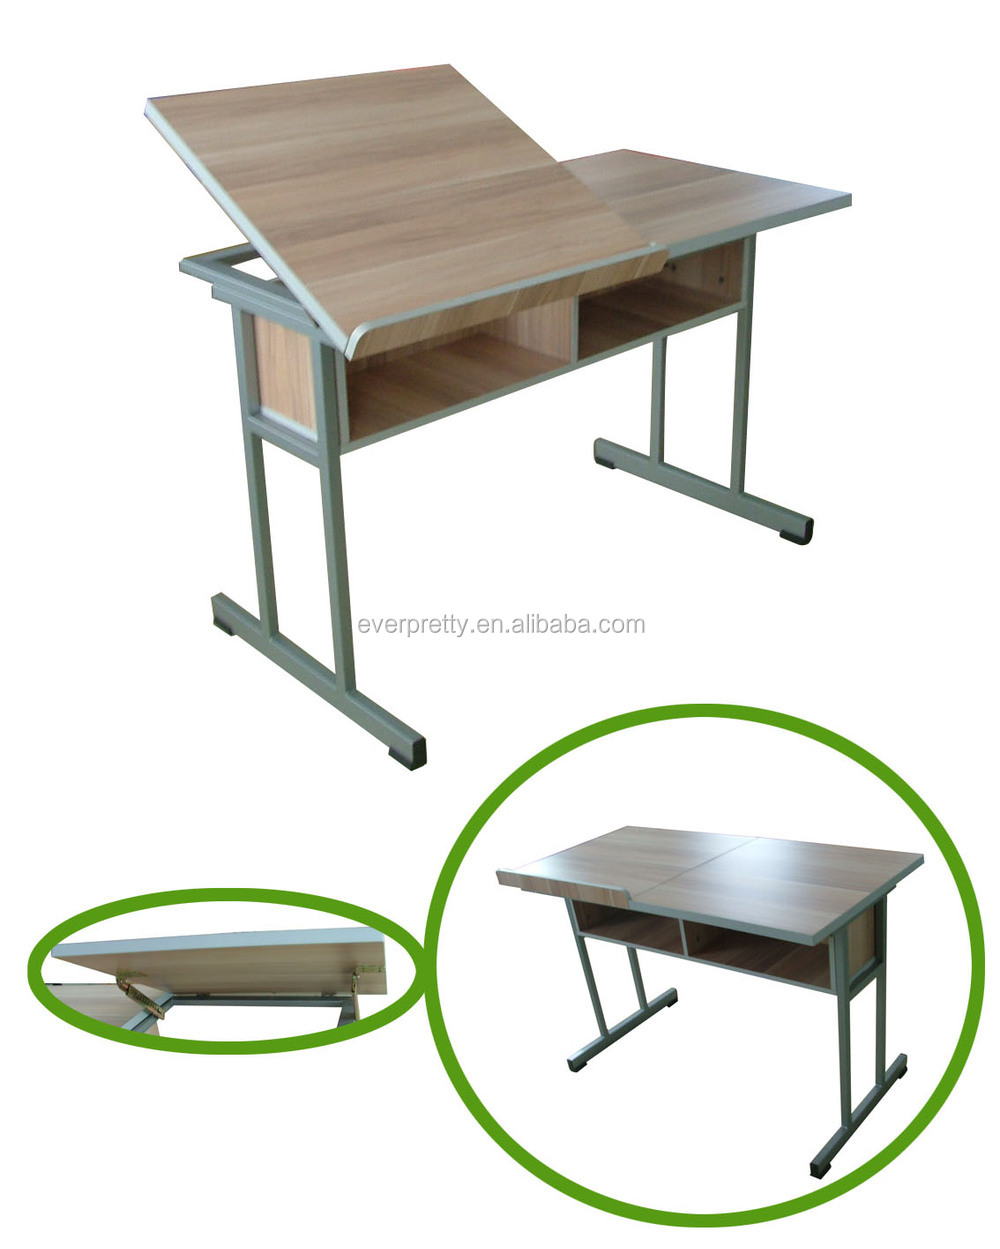 Table drawing for kids - Kids Drawing Table Engineering Drawing Table Drawing Room Table